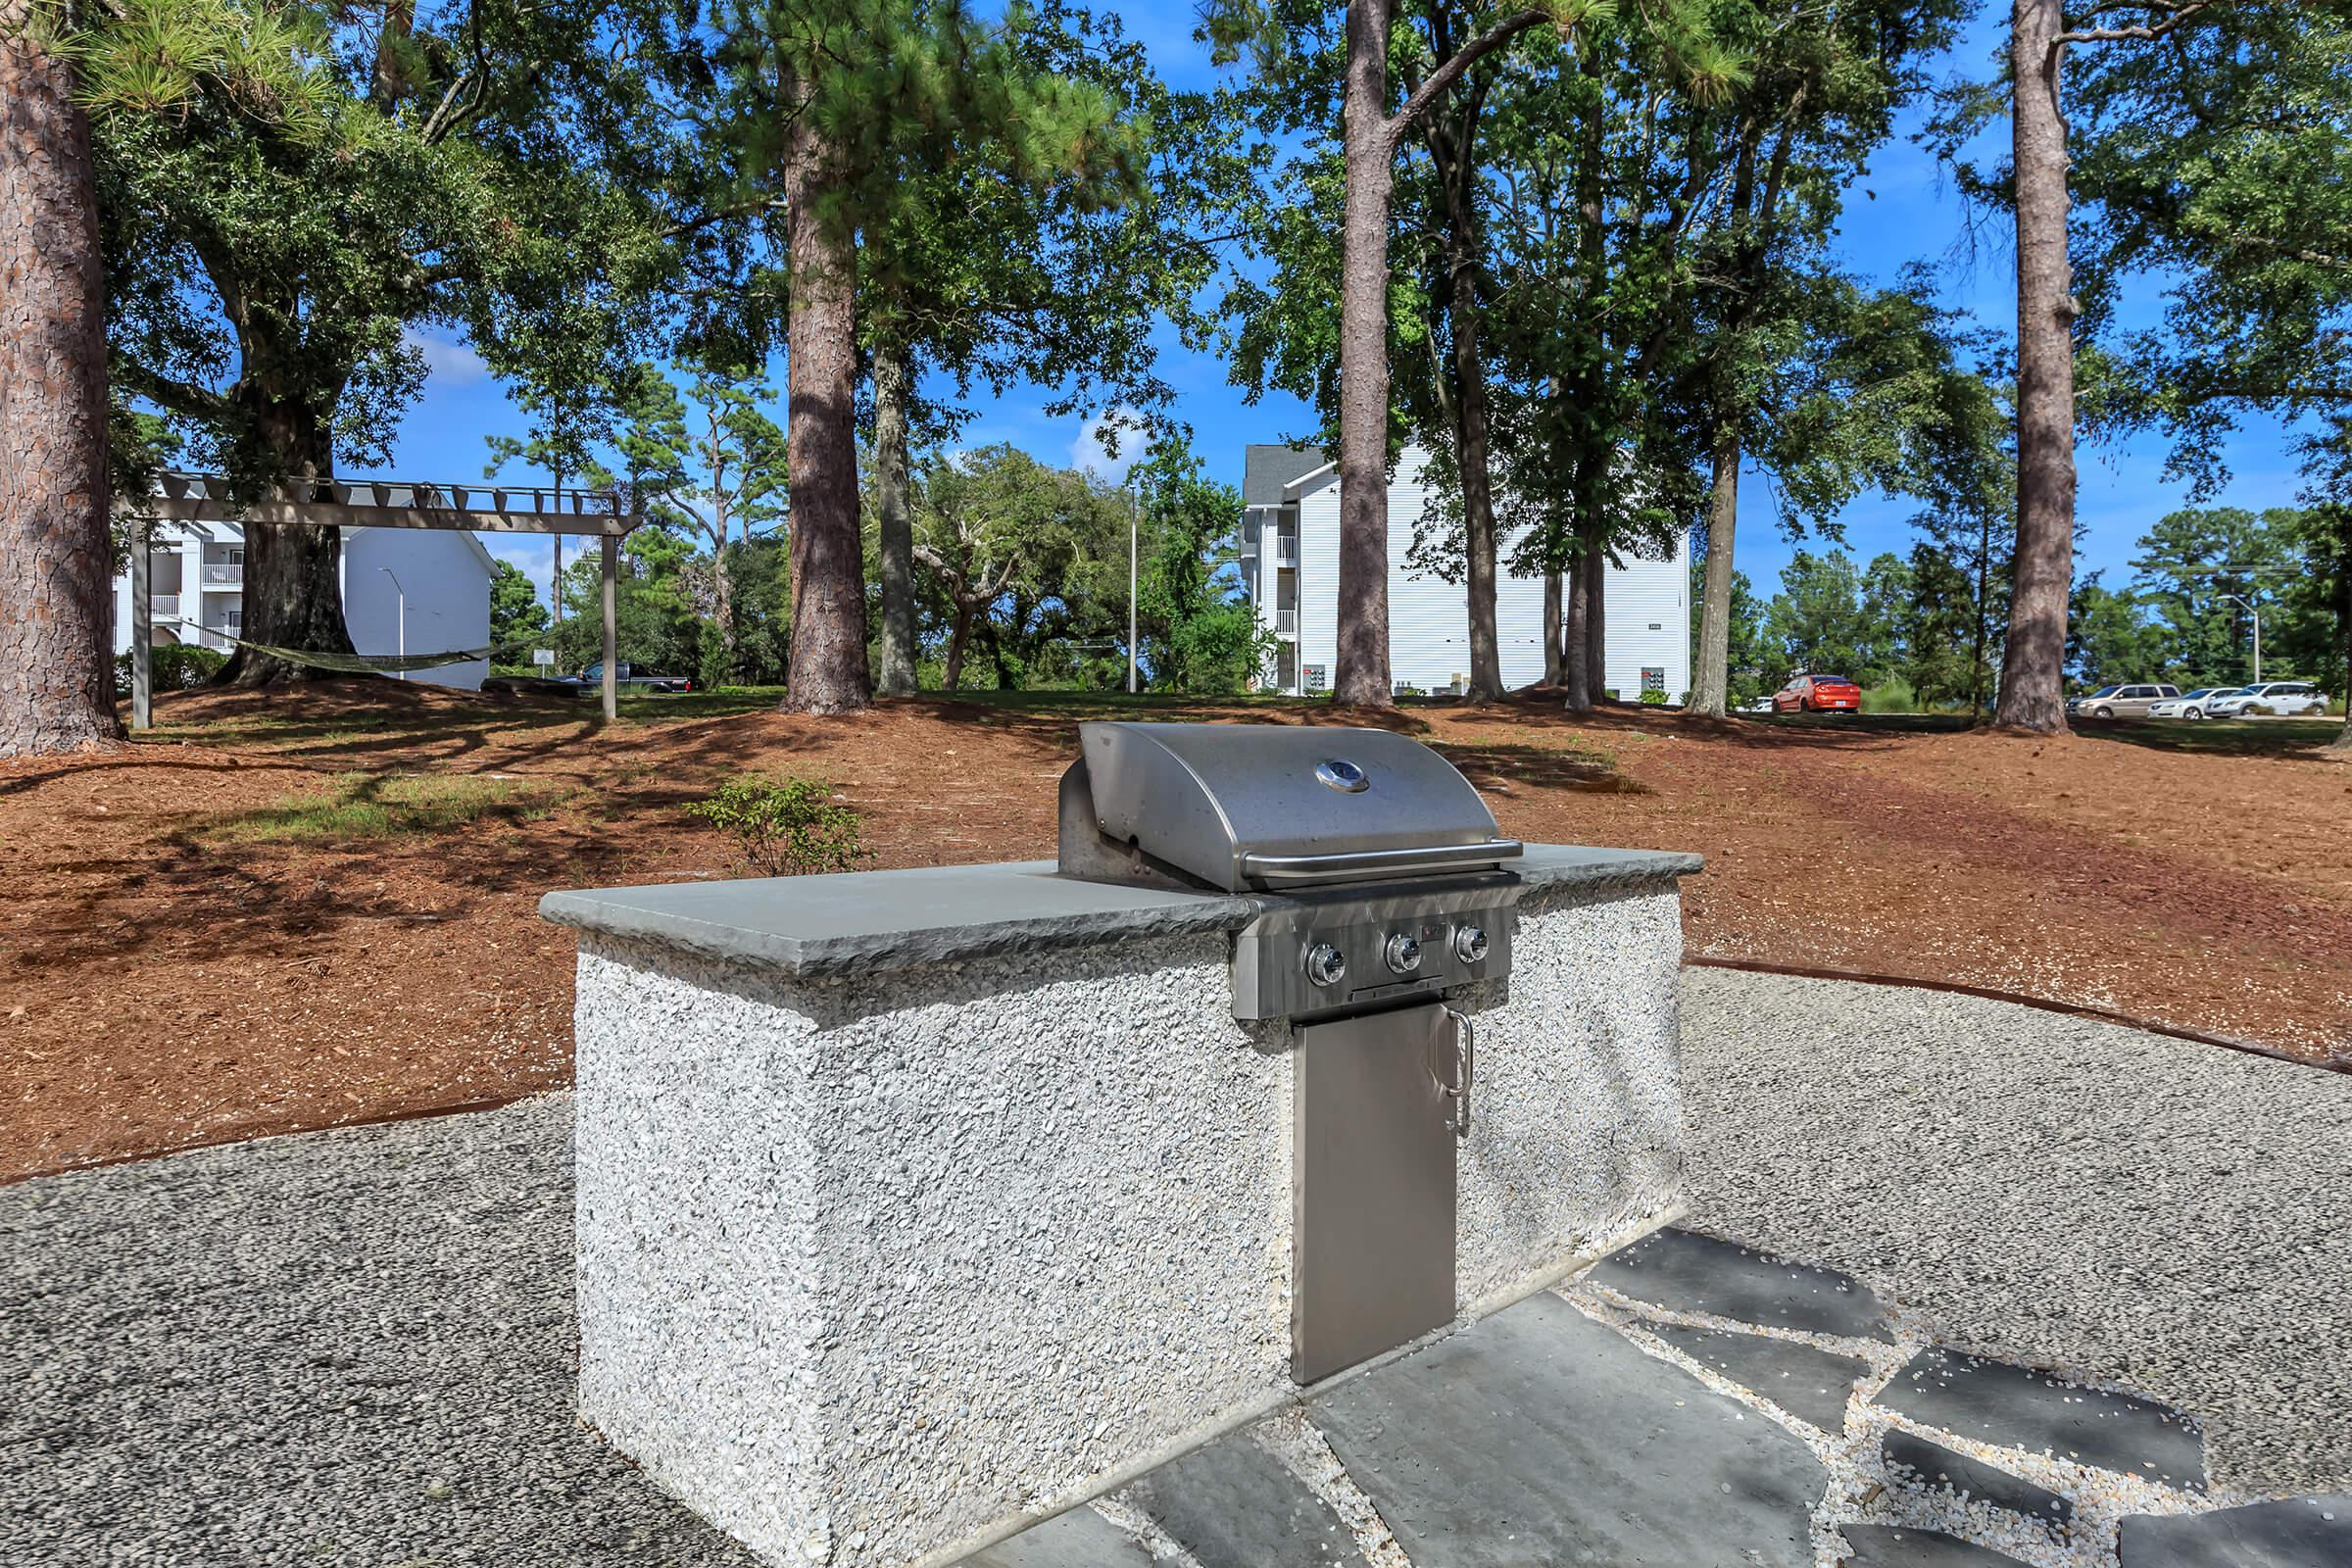 a statue of a cement bench